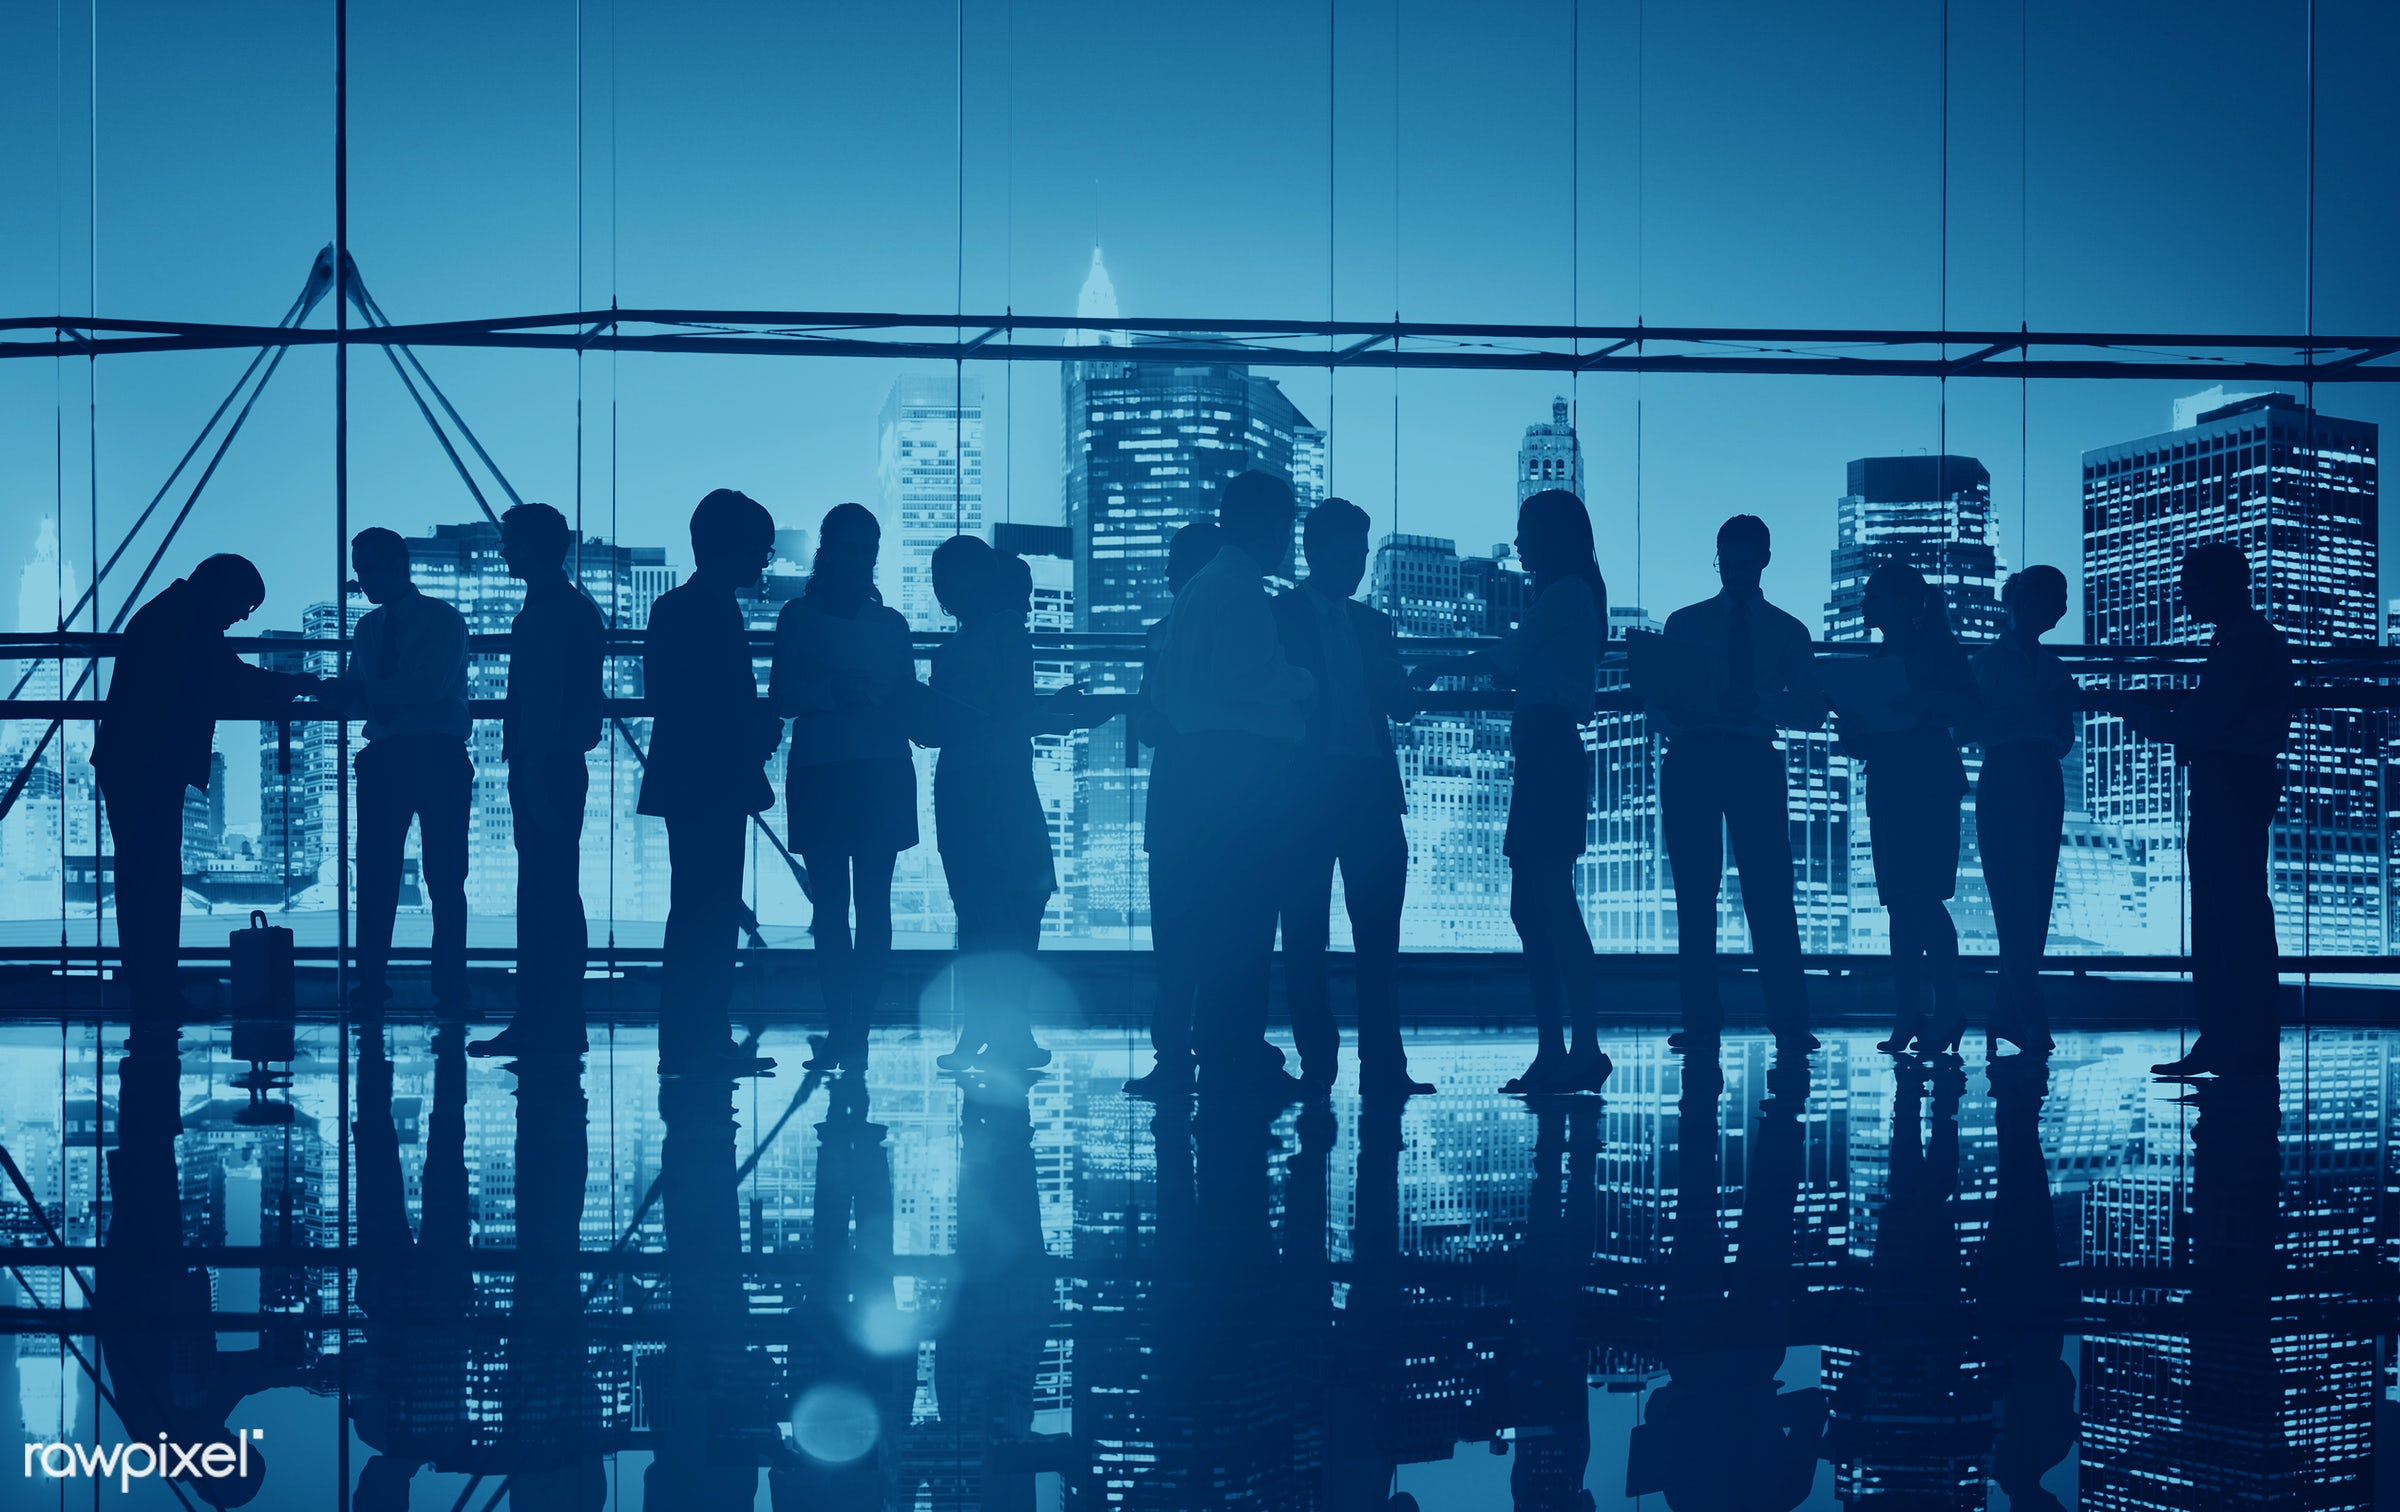 abstract, back lit, blue, bowing, brainstorming, building, business, business people, businessmen, businesswomen, city,...